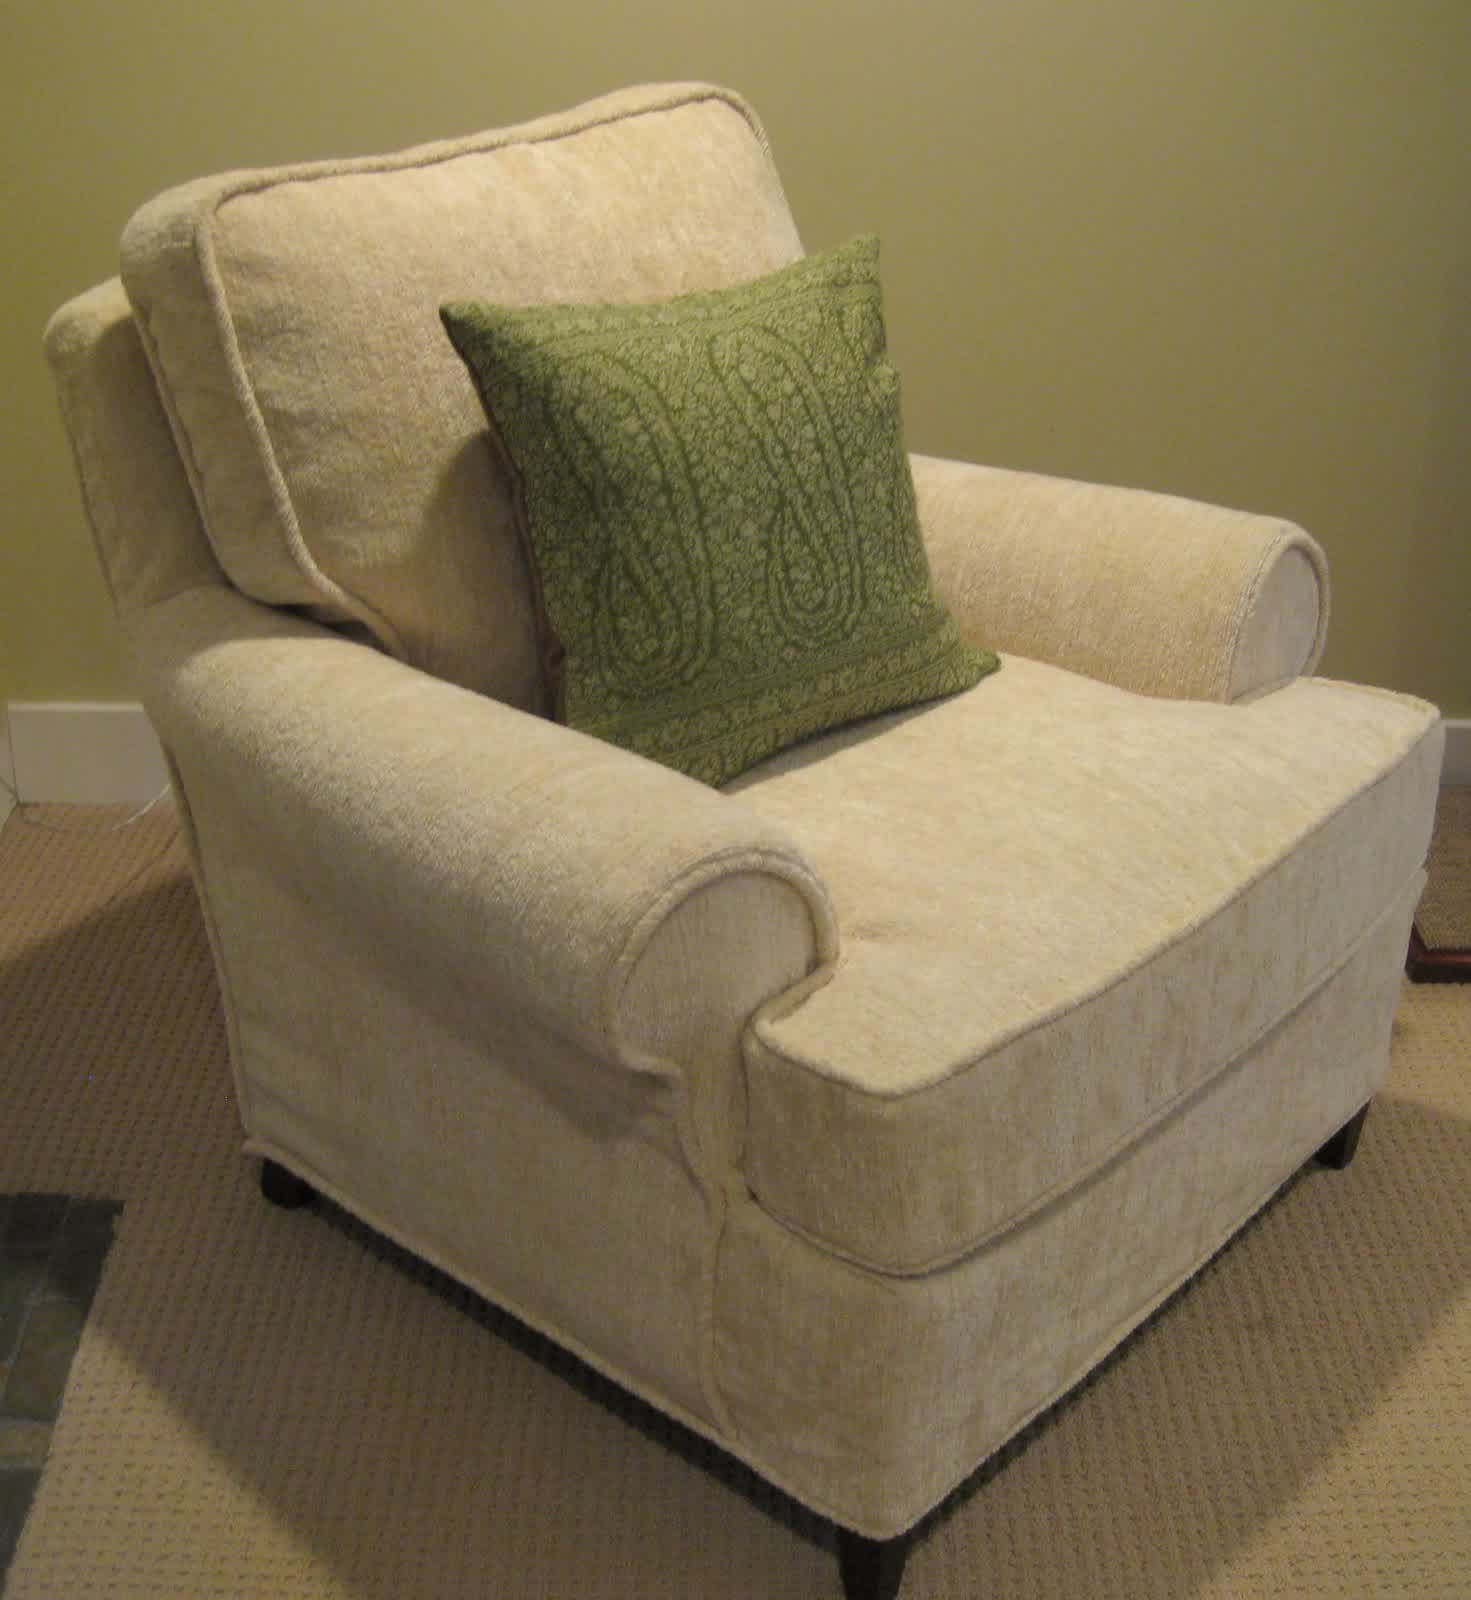 Add Club Chair A Whole New Look Only With Club Chair Slipcover Homesfeed